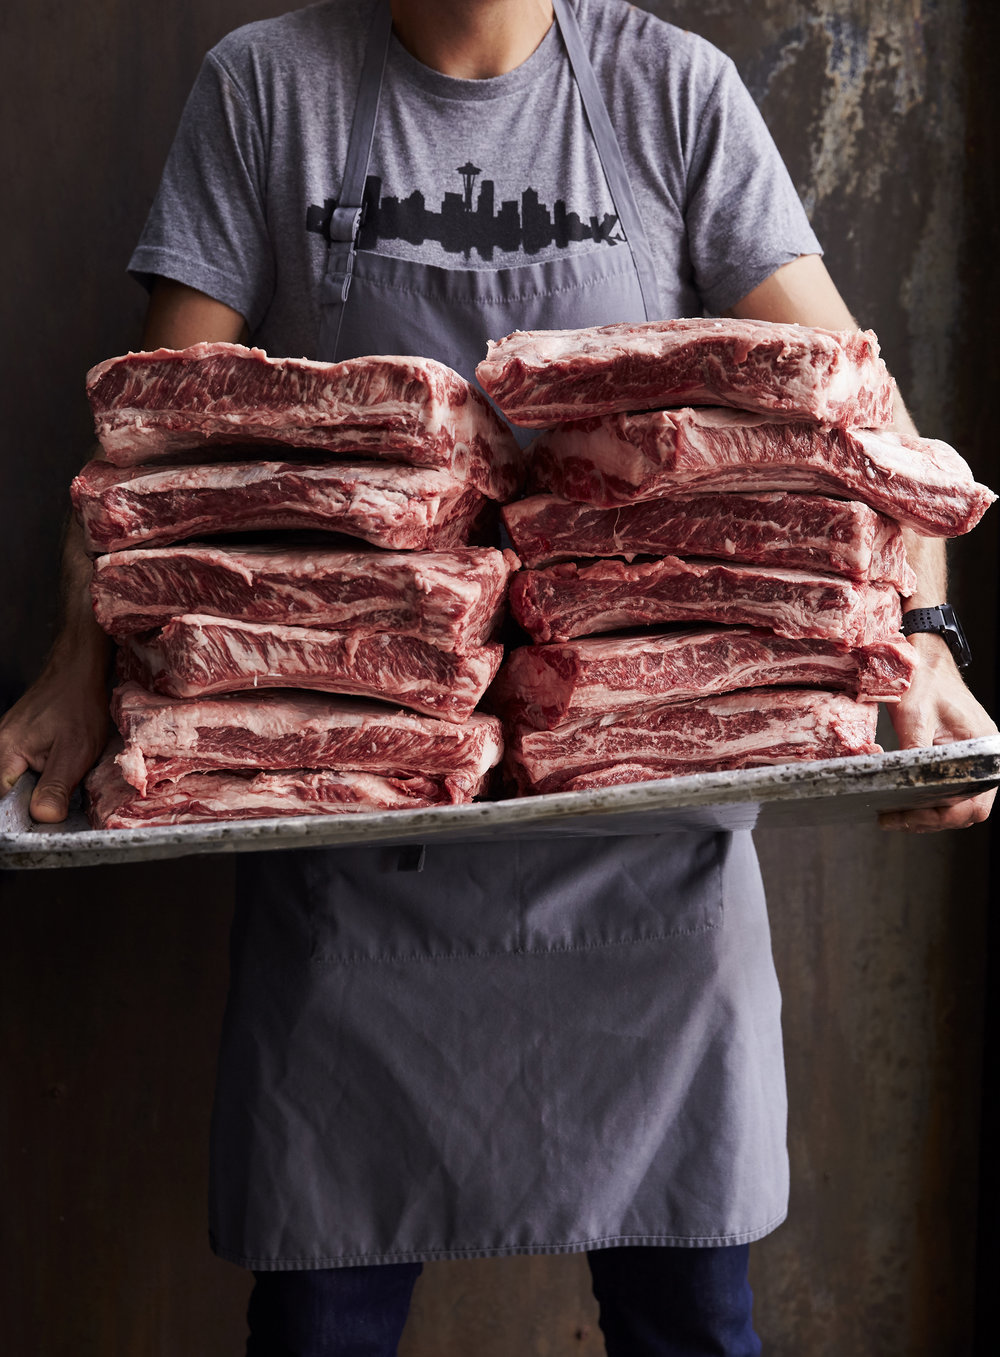 Burggraaf_Charity-Seattle_Food_Photographer-Joule_Meat.jpg